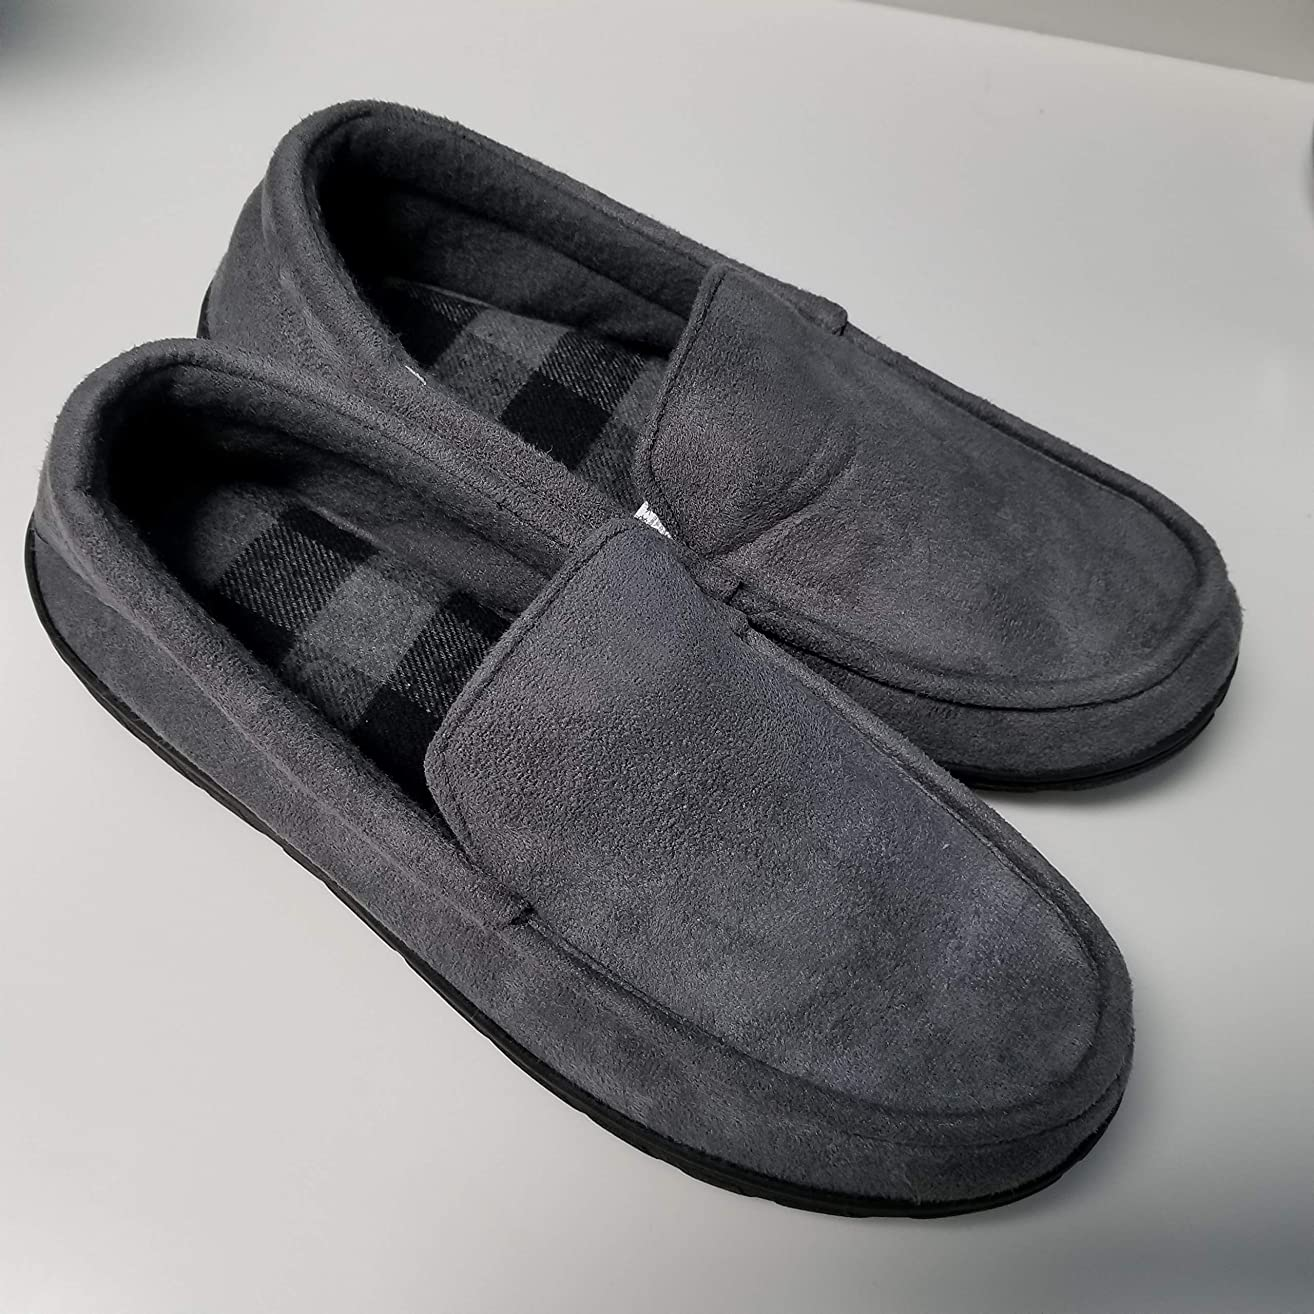 totes Toasties Men's Memory Foam Slippers (XL, Gray)